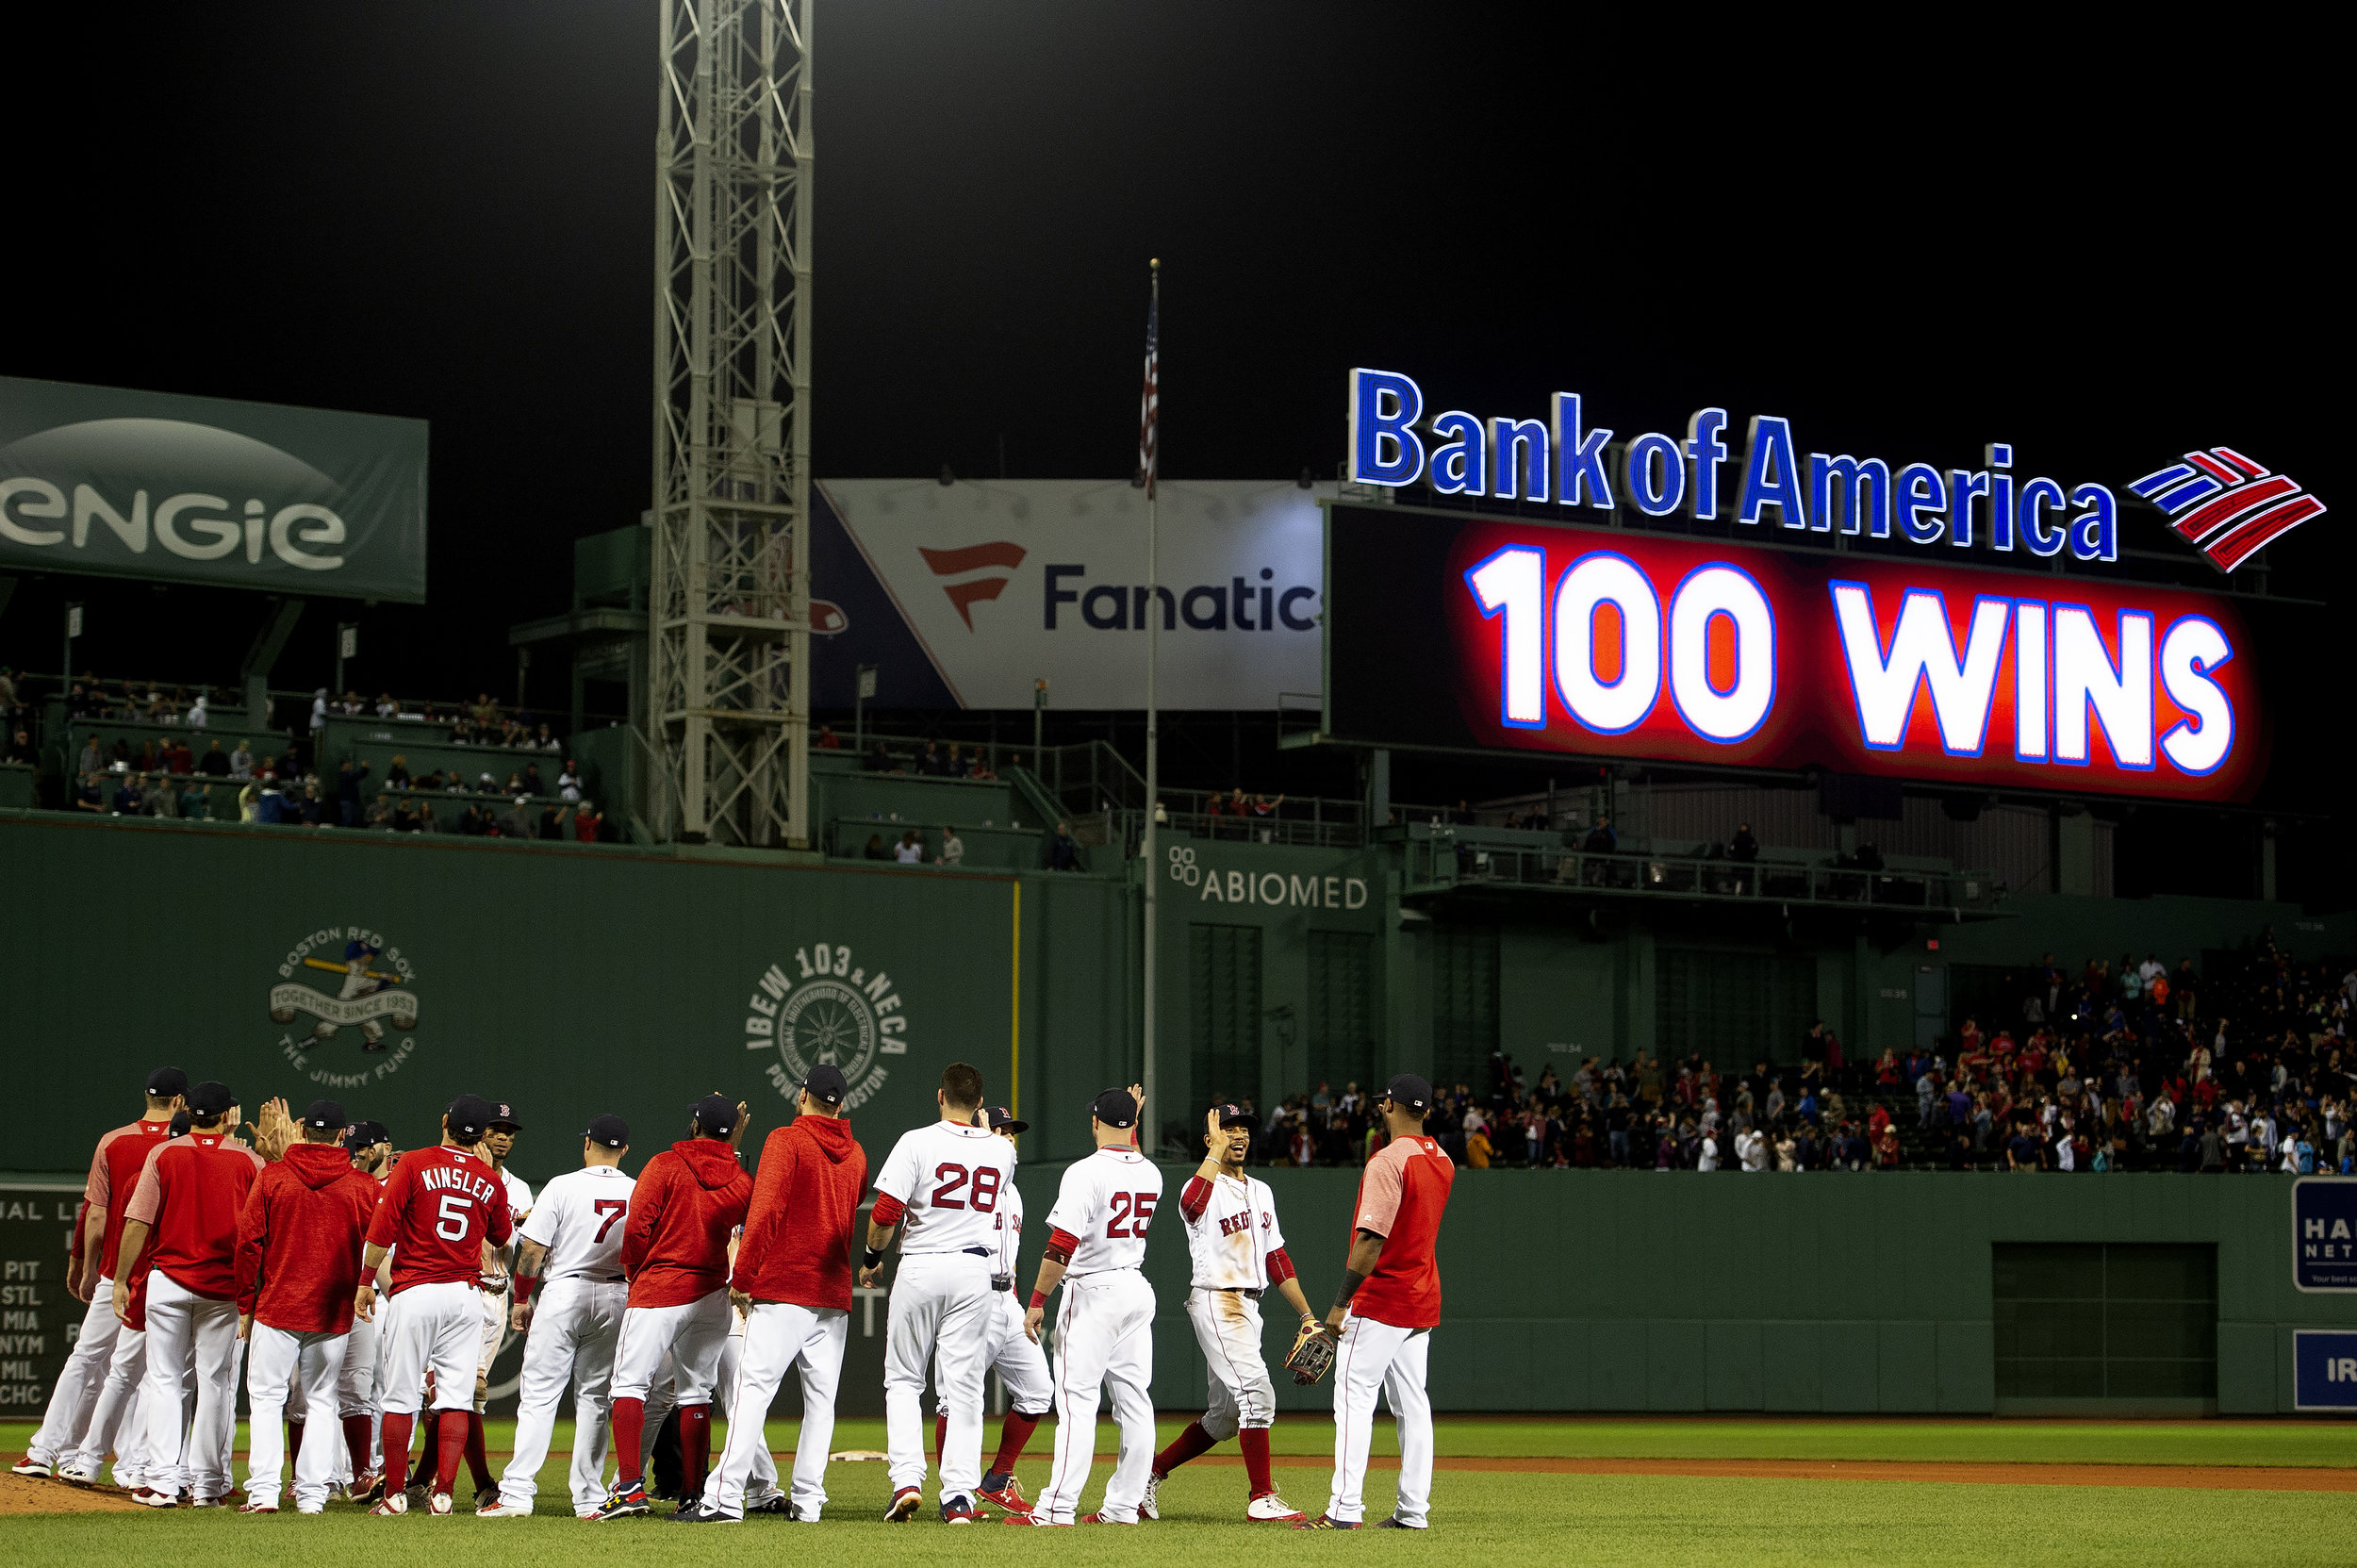 The Boston Red Sox are the first team to earn 100 wins, defeating the Toronto Blue Jays 1-0 at Fenway Park in Boston, Massachusetts Wednesday, September 12, 2018. This was their first 100-win season since 1946.